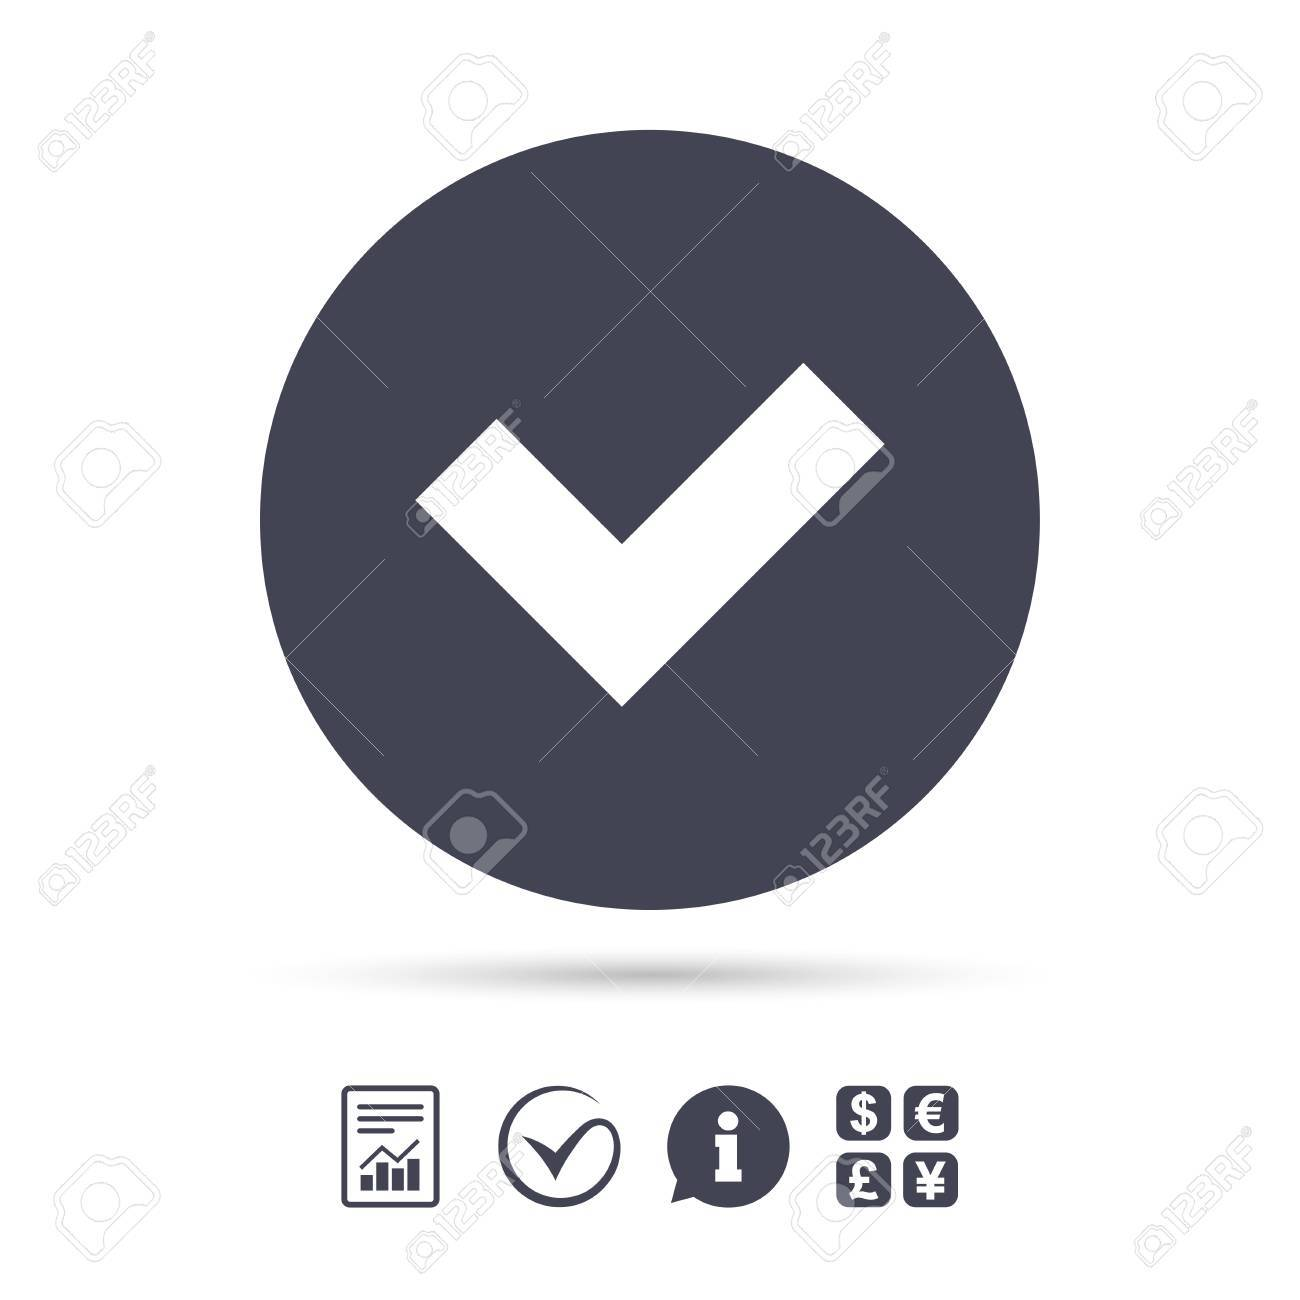 Check sign icon  Yes button  Report document, information and